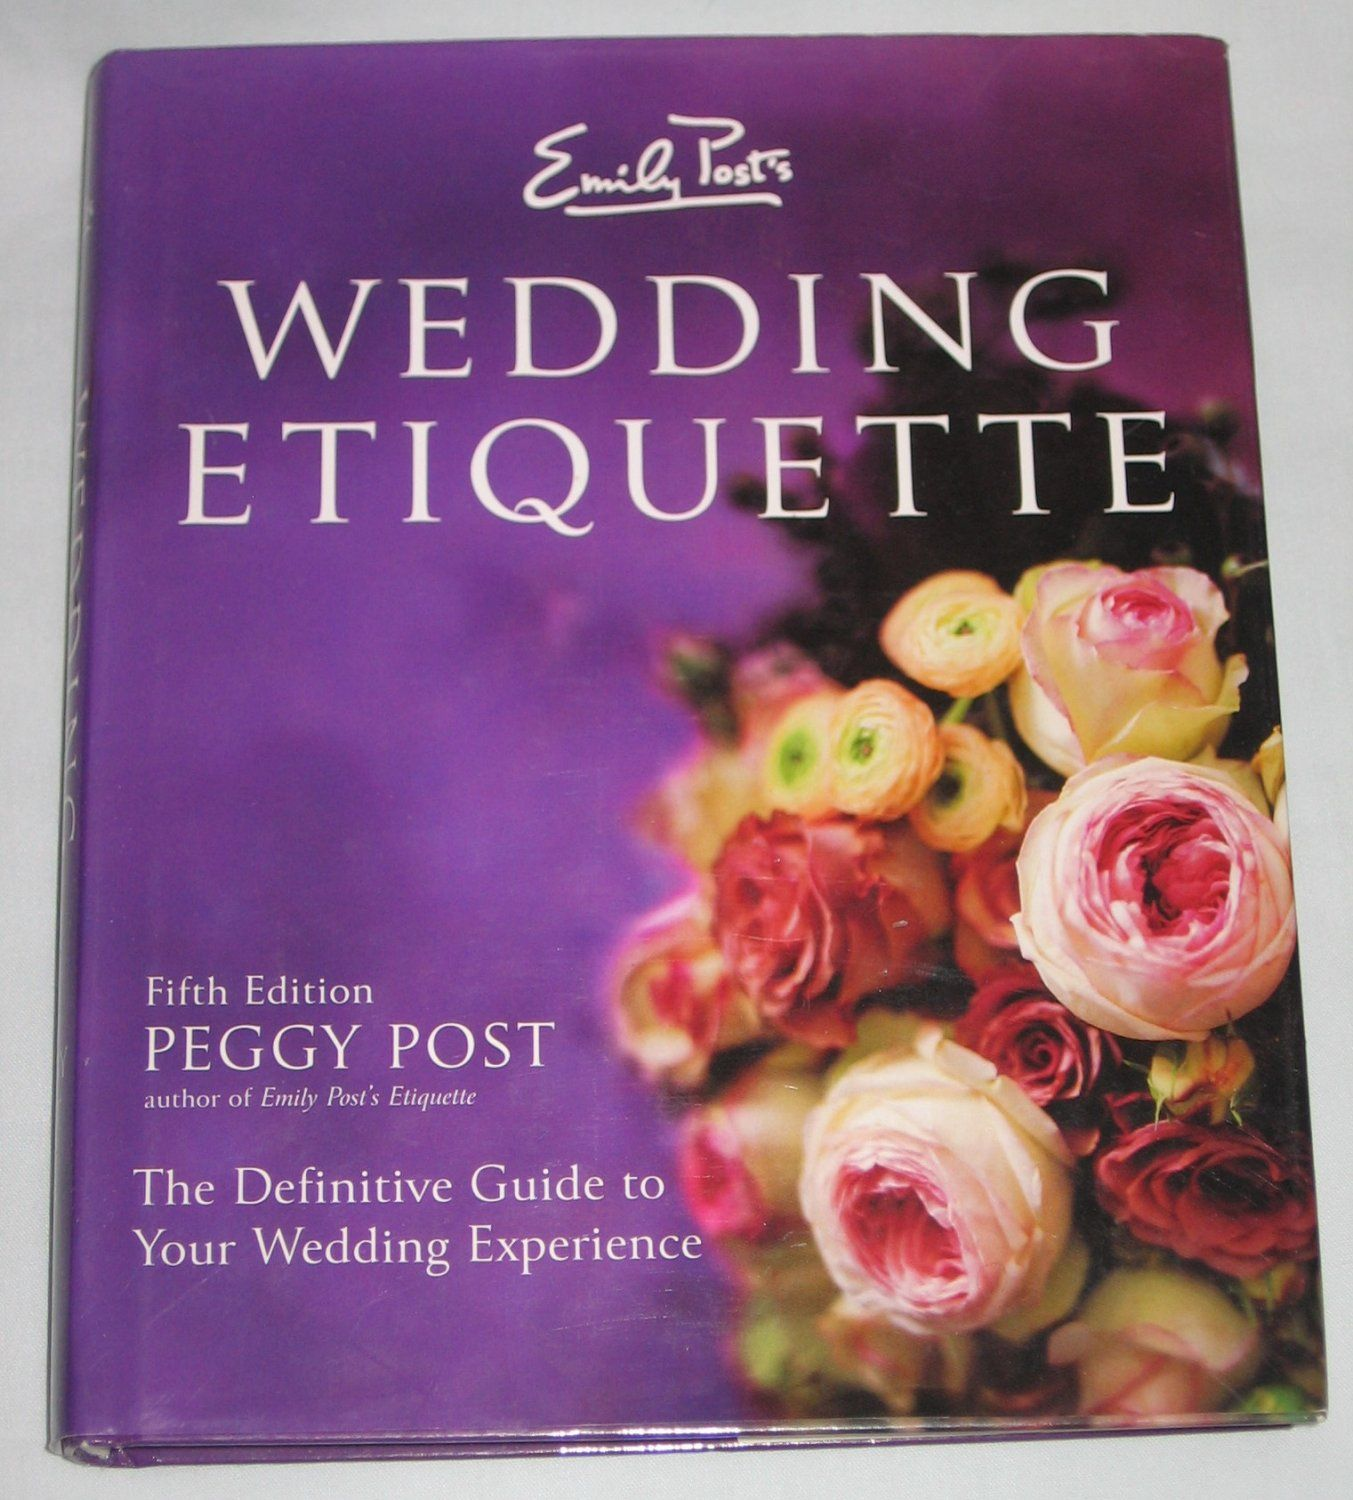 For Sale Emily Posts Wedding Etiquette Definitive Guide To Your Wedding Experience By Peggy Post Hardcover Wedding Etiquette Wedding Book Post Wedding